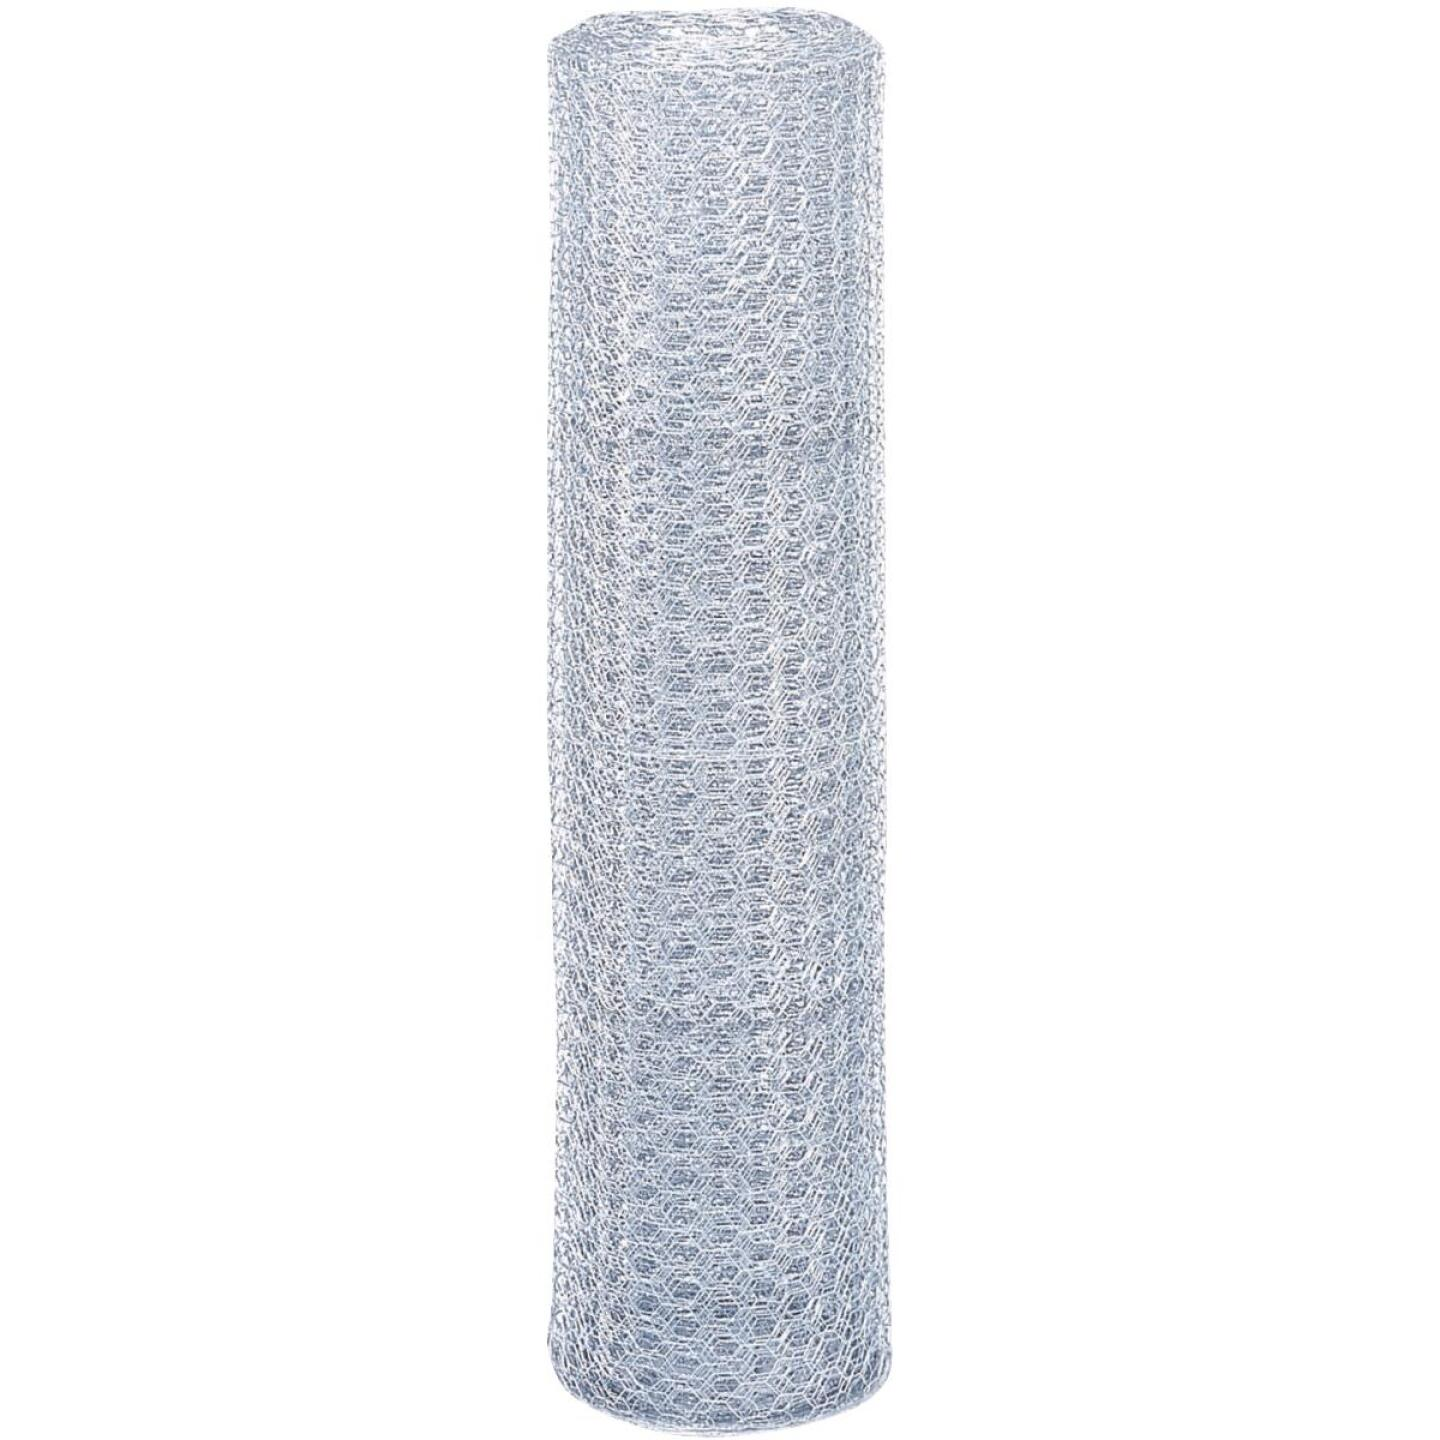 Do it 1 In. x 48 In. H. x 50 Ft. L. Hexagonal Wire Poultry Netting Image 3